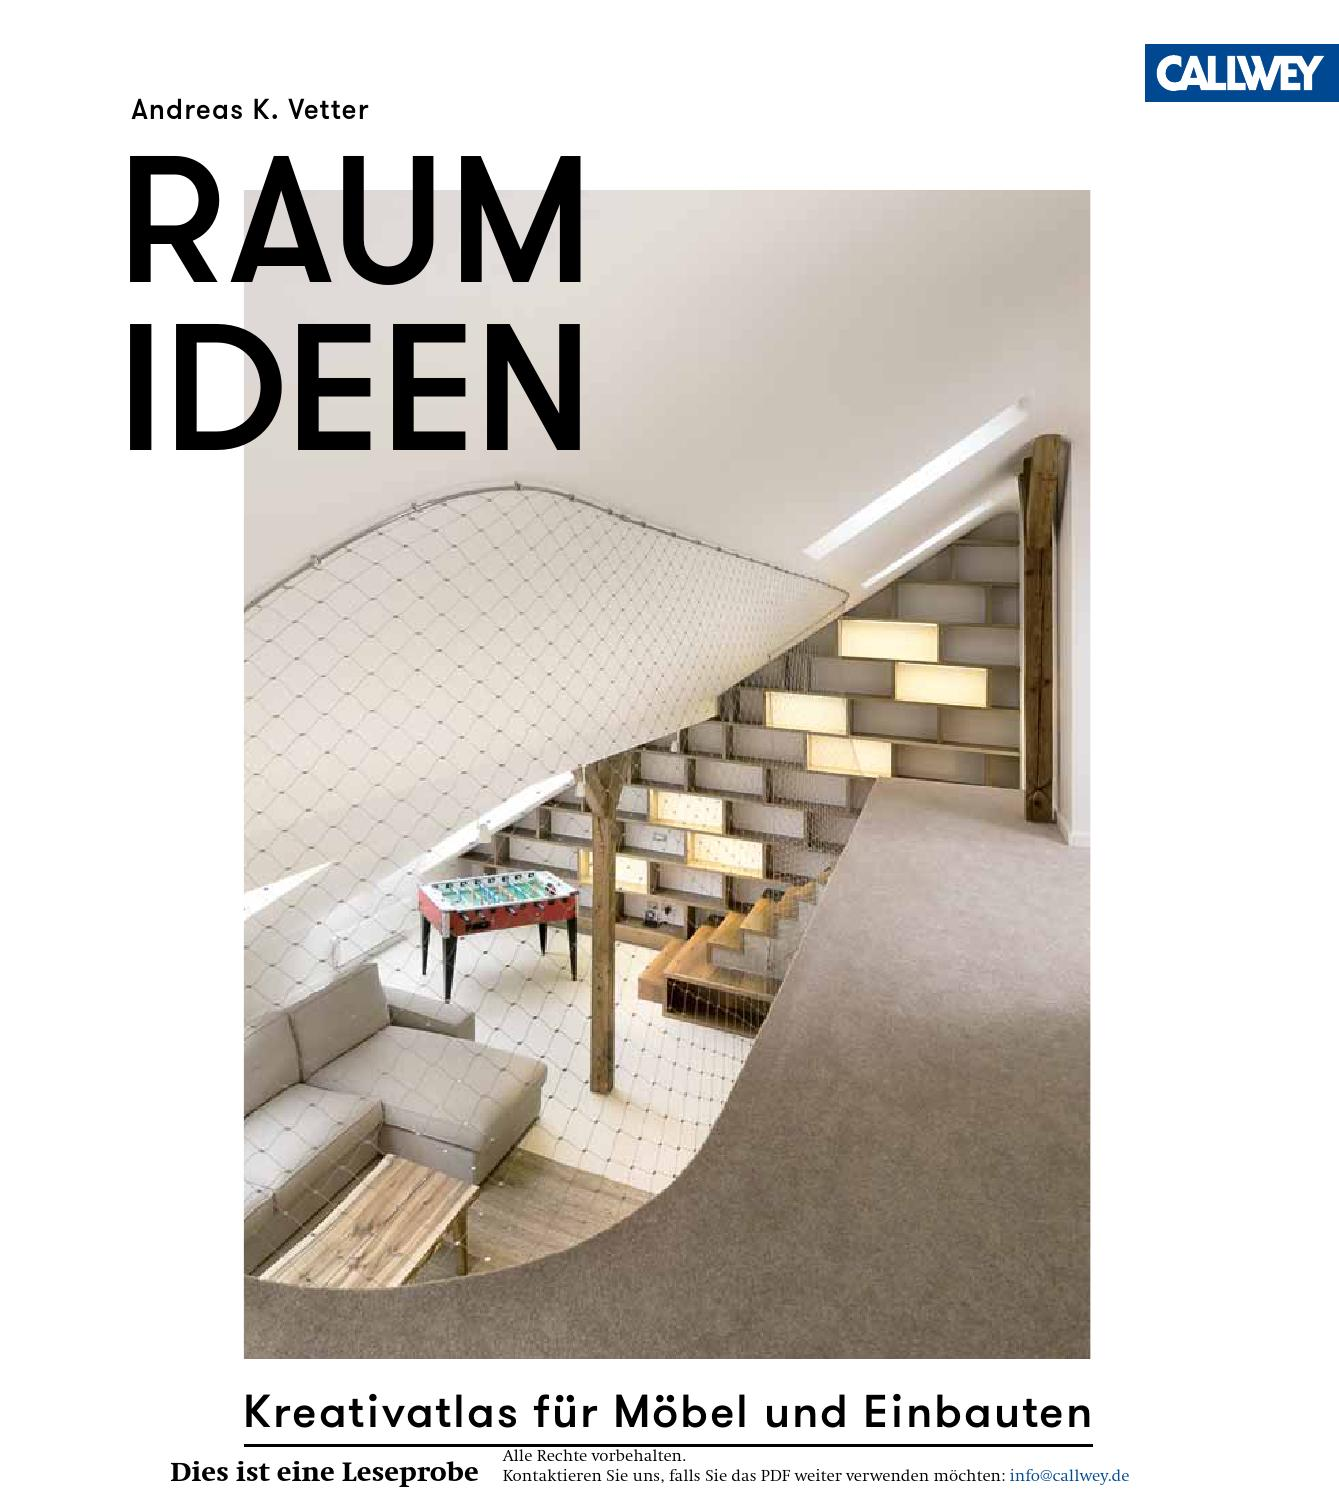 Vetter - Raumideen by Georg D.W. Callwey GmbH & Co. KG - issuu